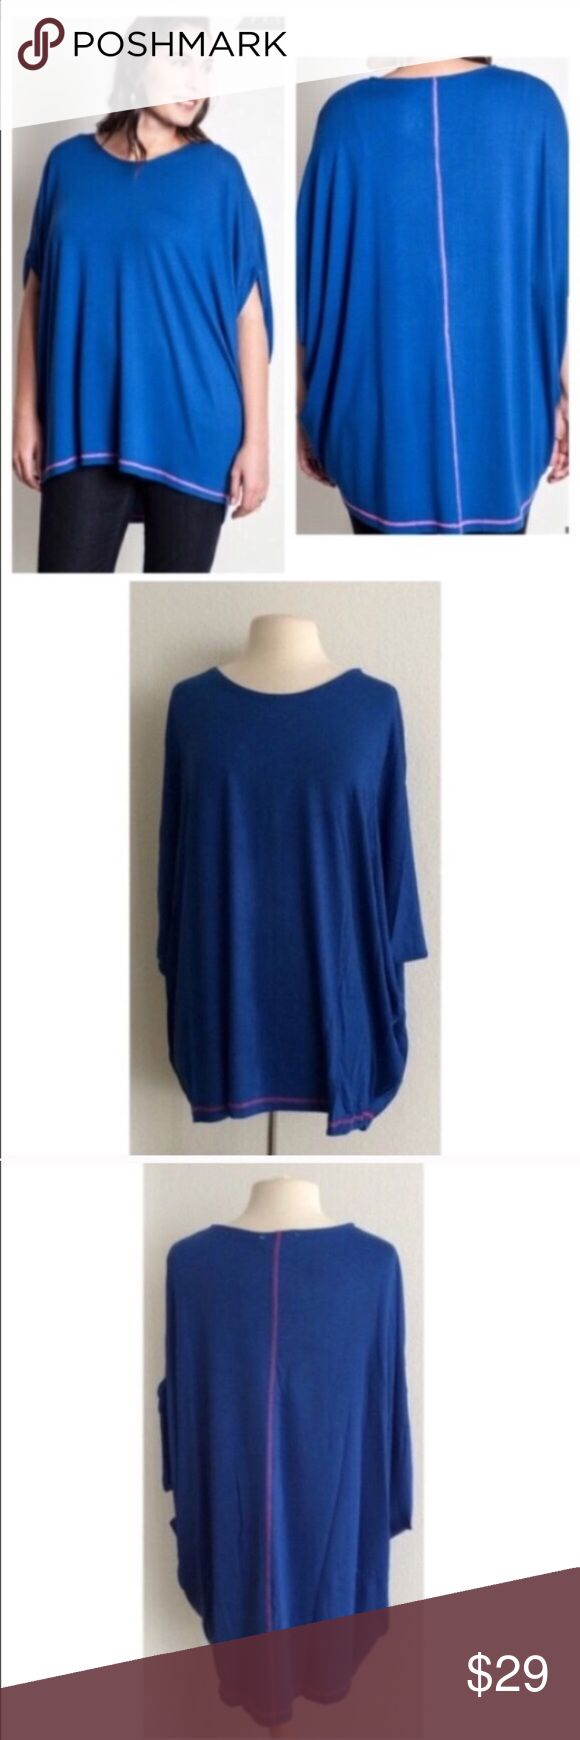 """(Plus) Blue batwing top Blue batwing top  Length- approx 32""""  Materials- 65% cotton/ 35% polyester. This is a pretty thick top and it is extremely versatile. It can be dressed up or dressed down. Runs slightly large.  Availability- XL•1x • 1•1 ⭐️This item is brand new from manufacturer without tags.  🚫NO TRADES 💲Price is firm unless bundled 💰Ask about bundle discounts Tops Tunics"""